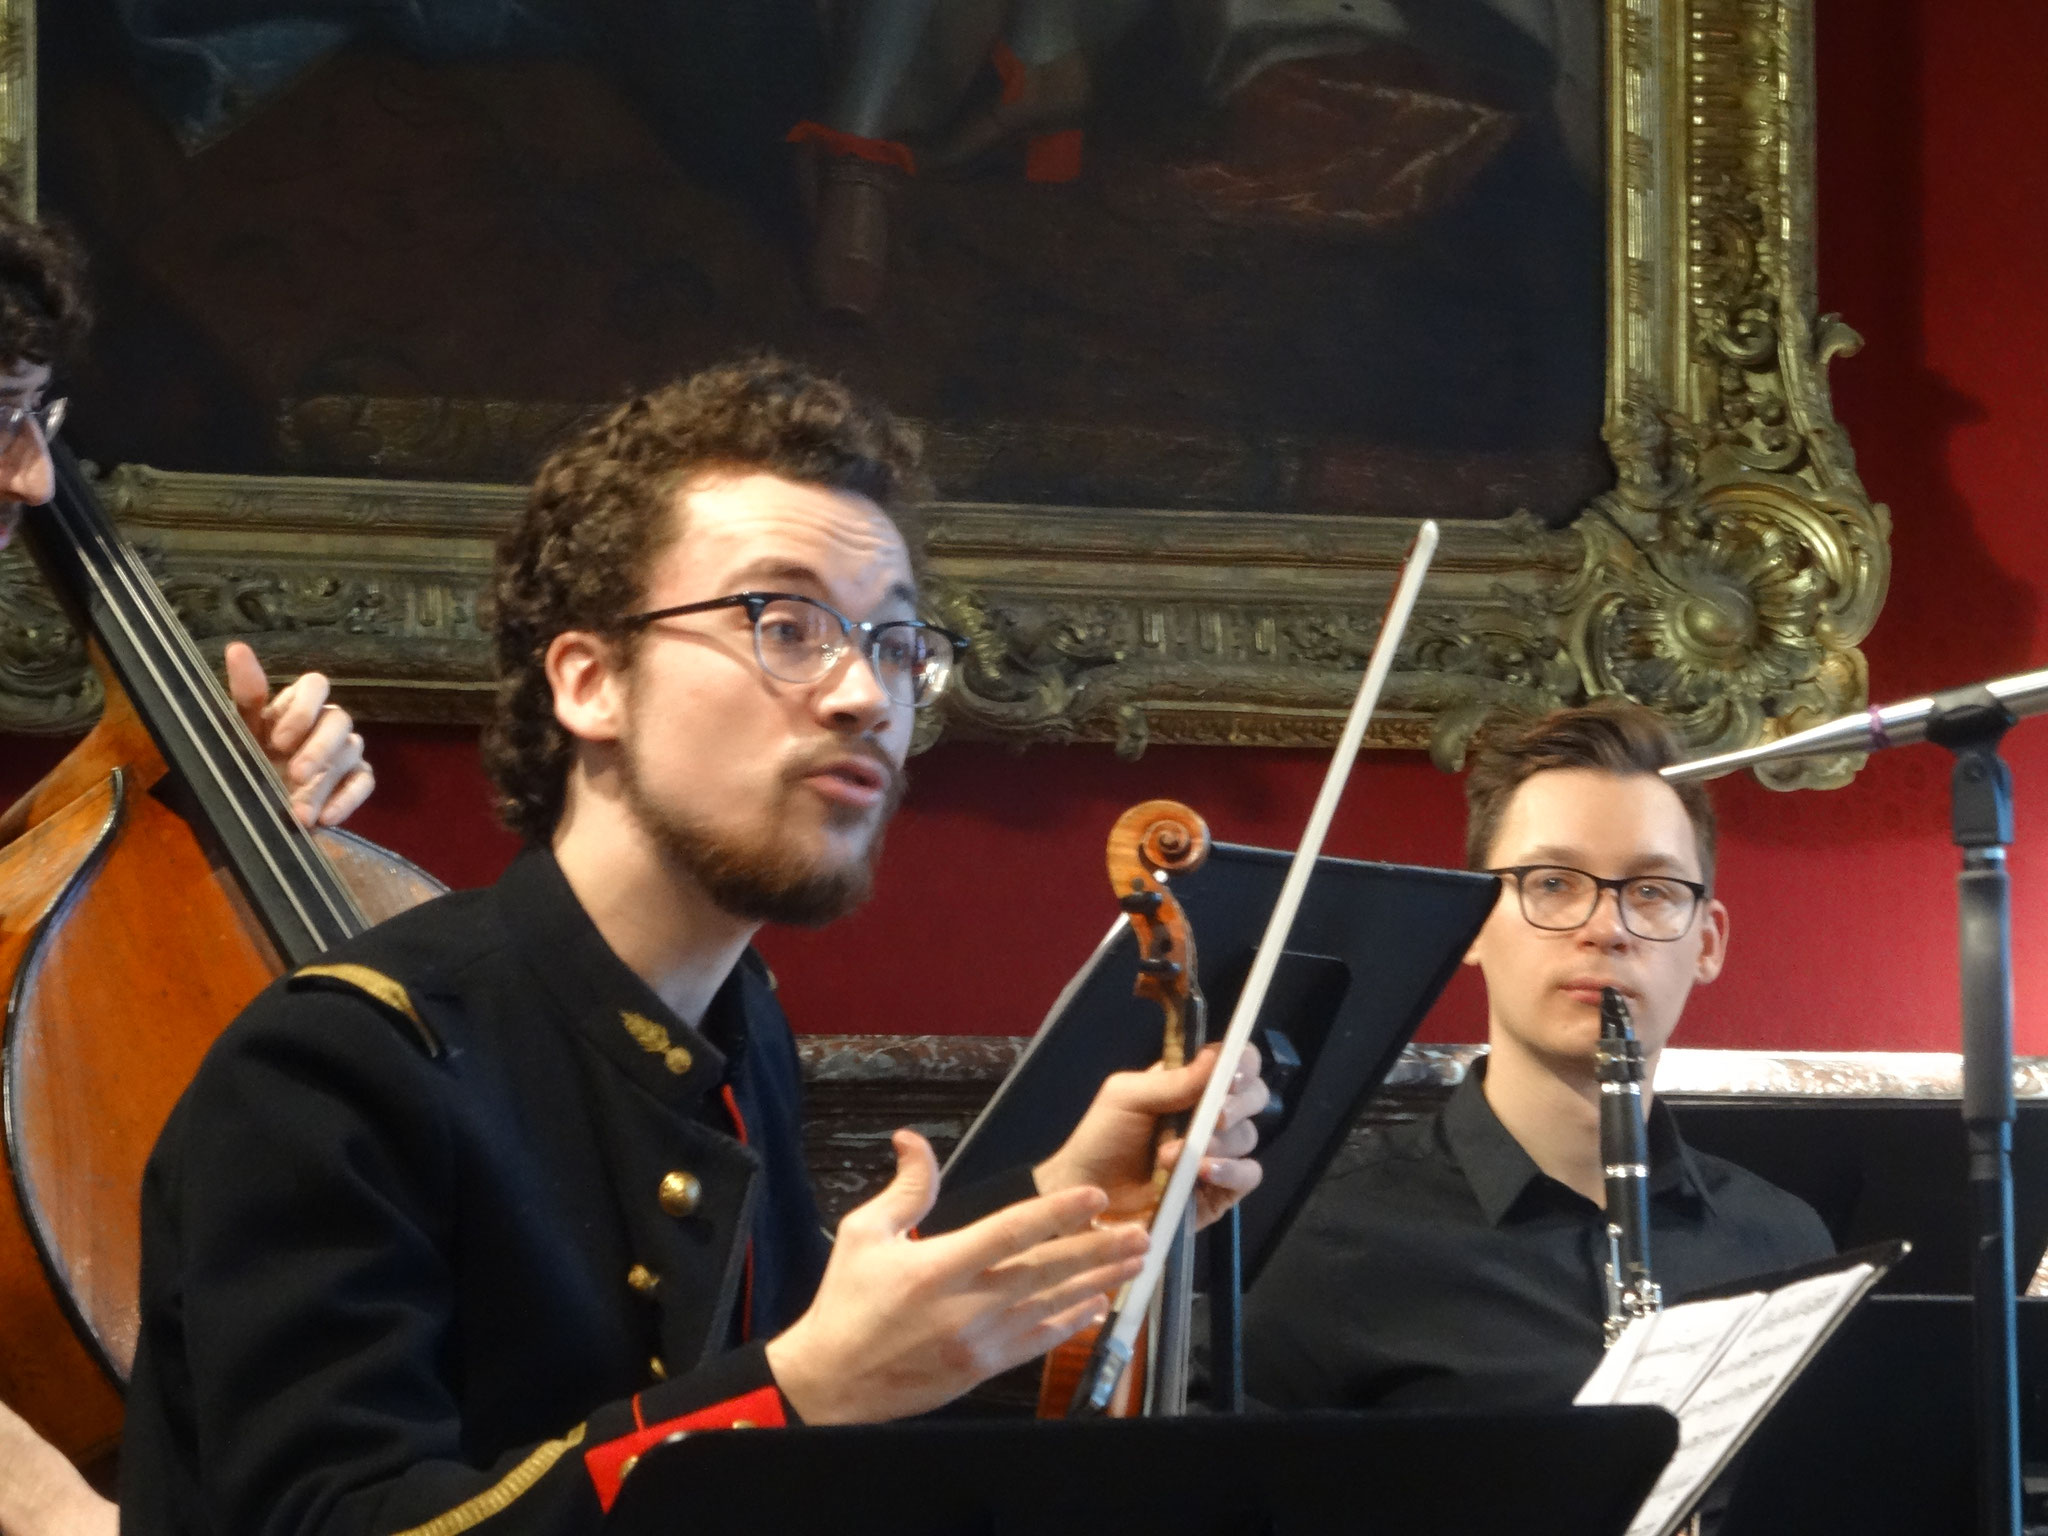 Histoire du Soldat by Stravinsky (violin and recitant), Invalides